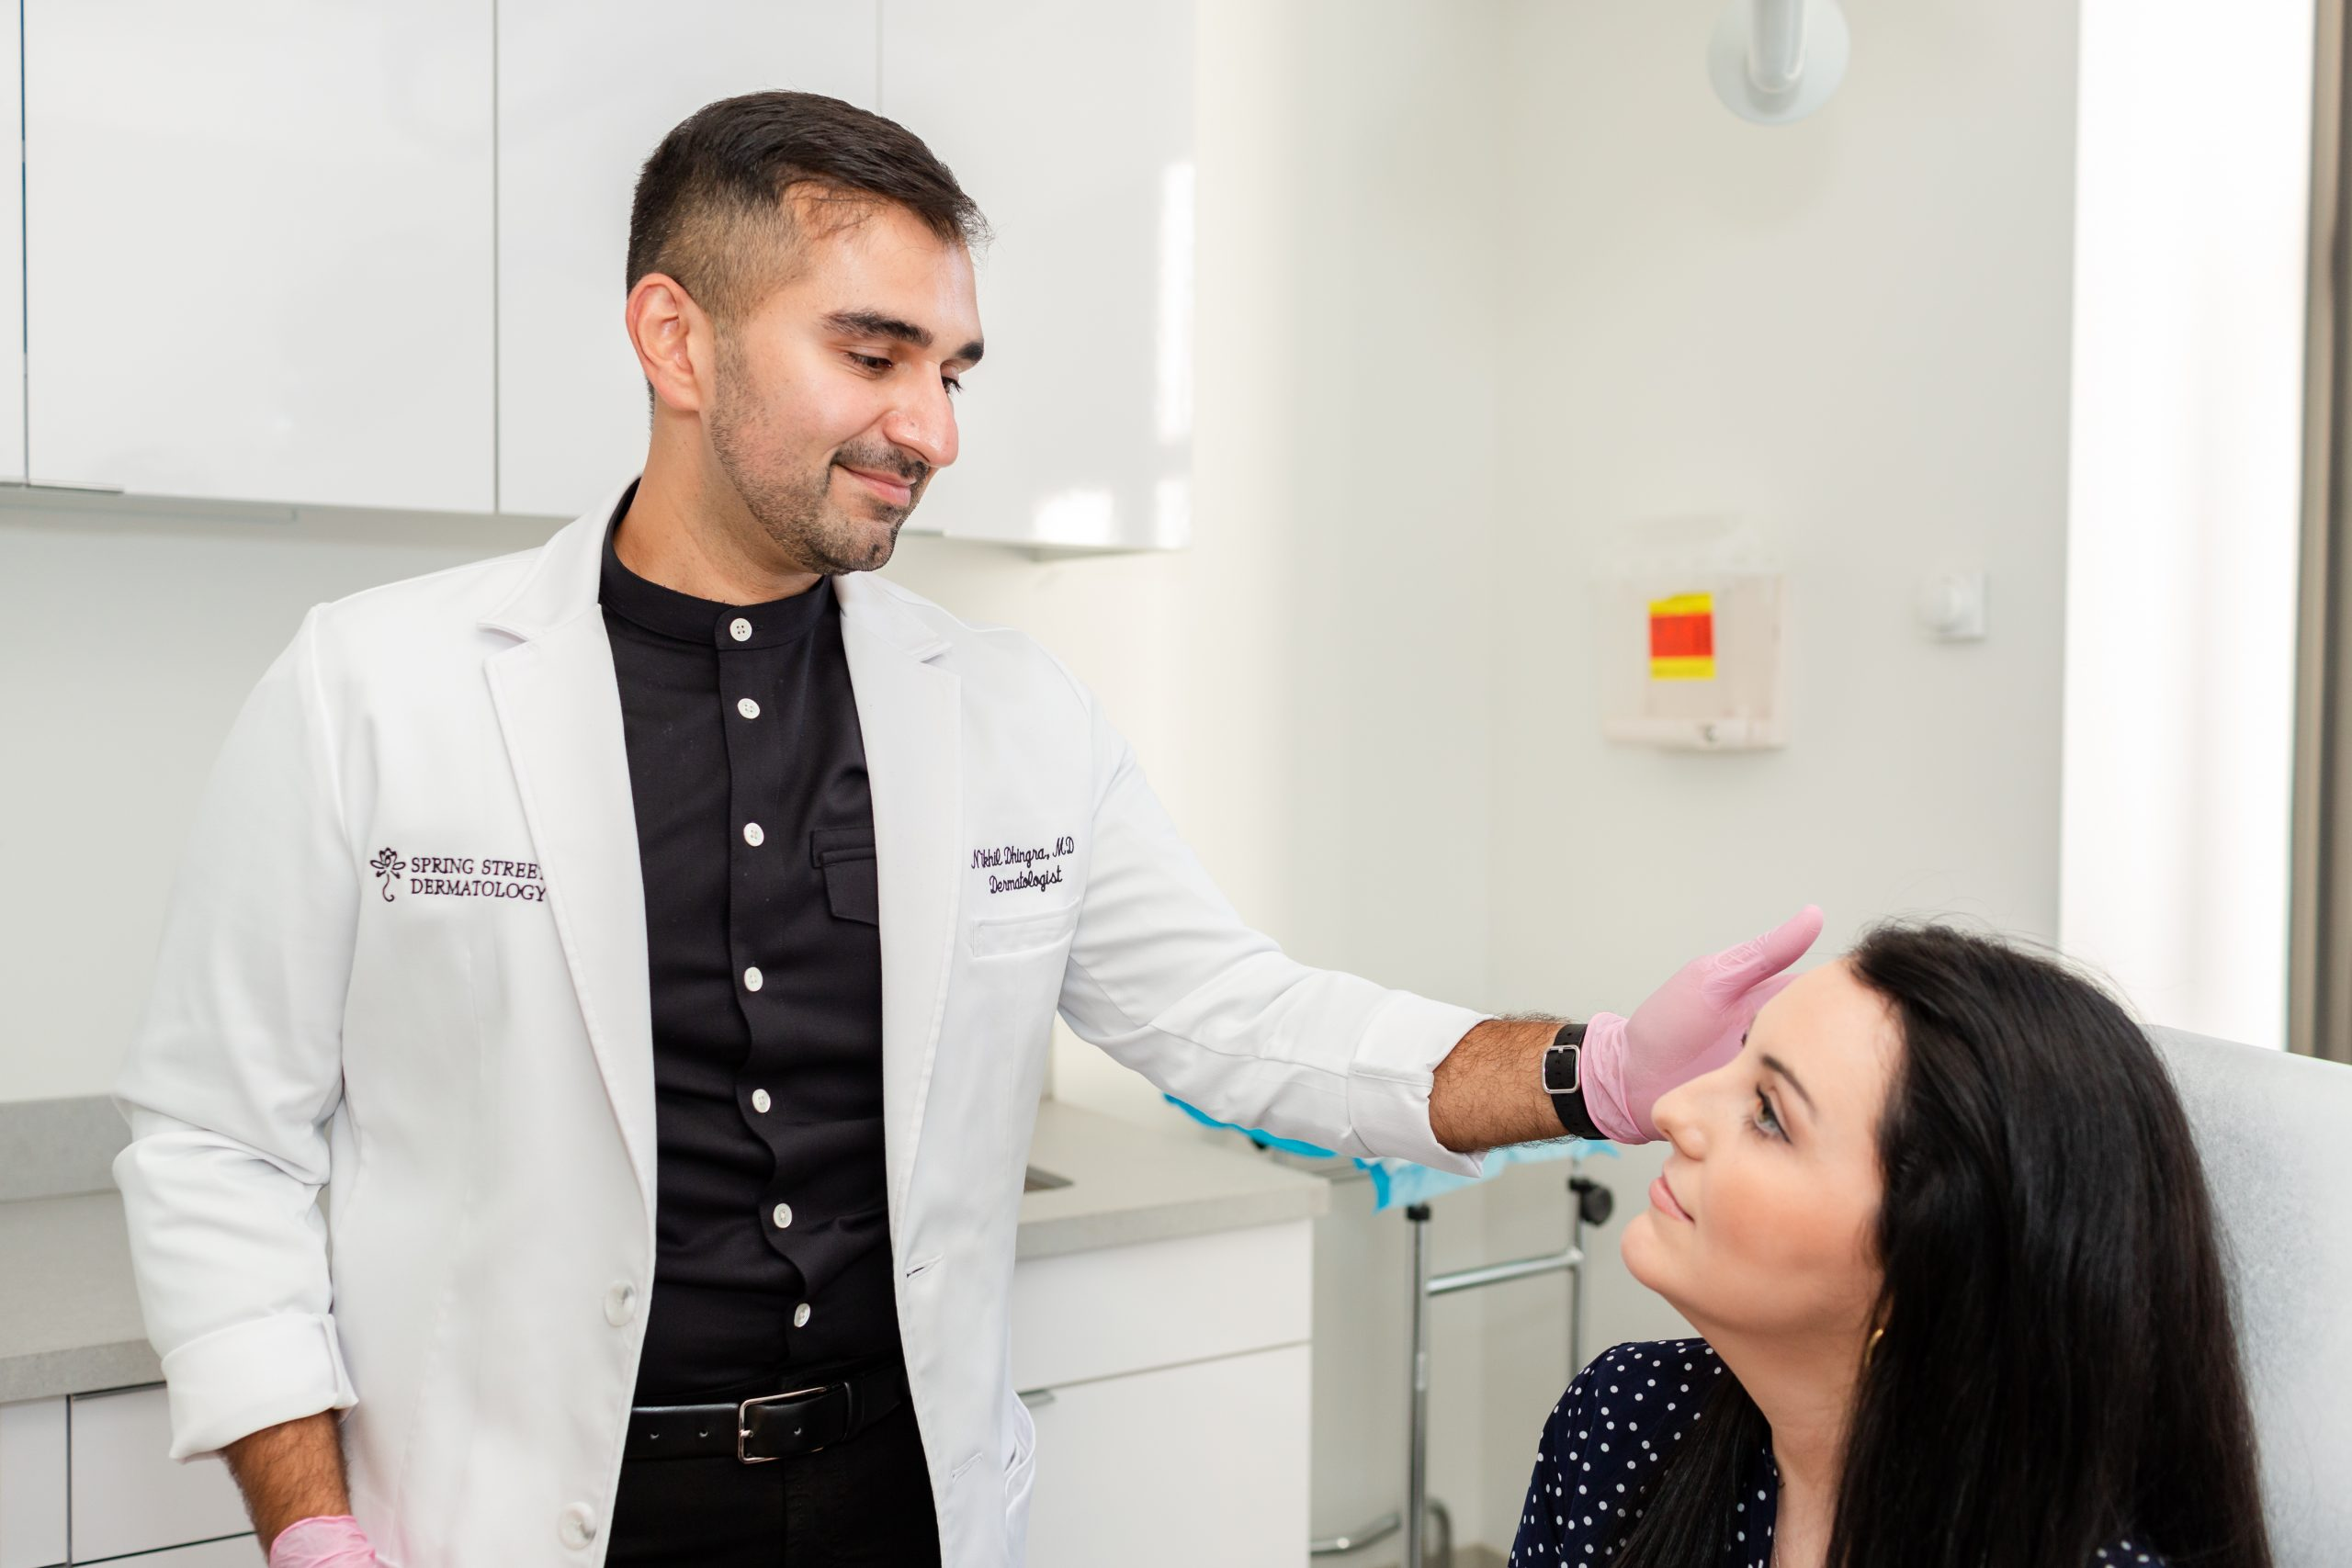 Ringworm consultation in New York City with Dr. Dhingra